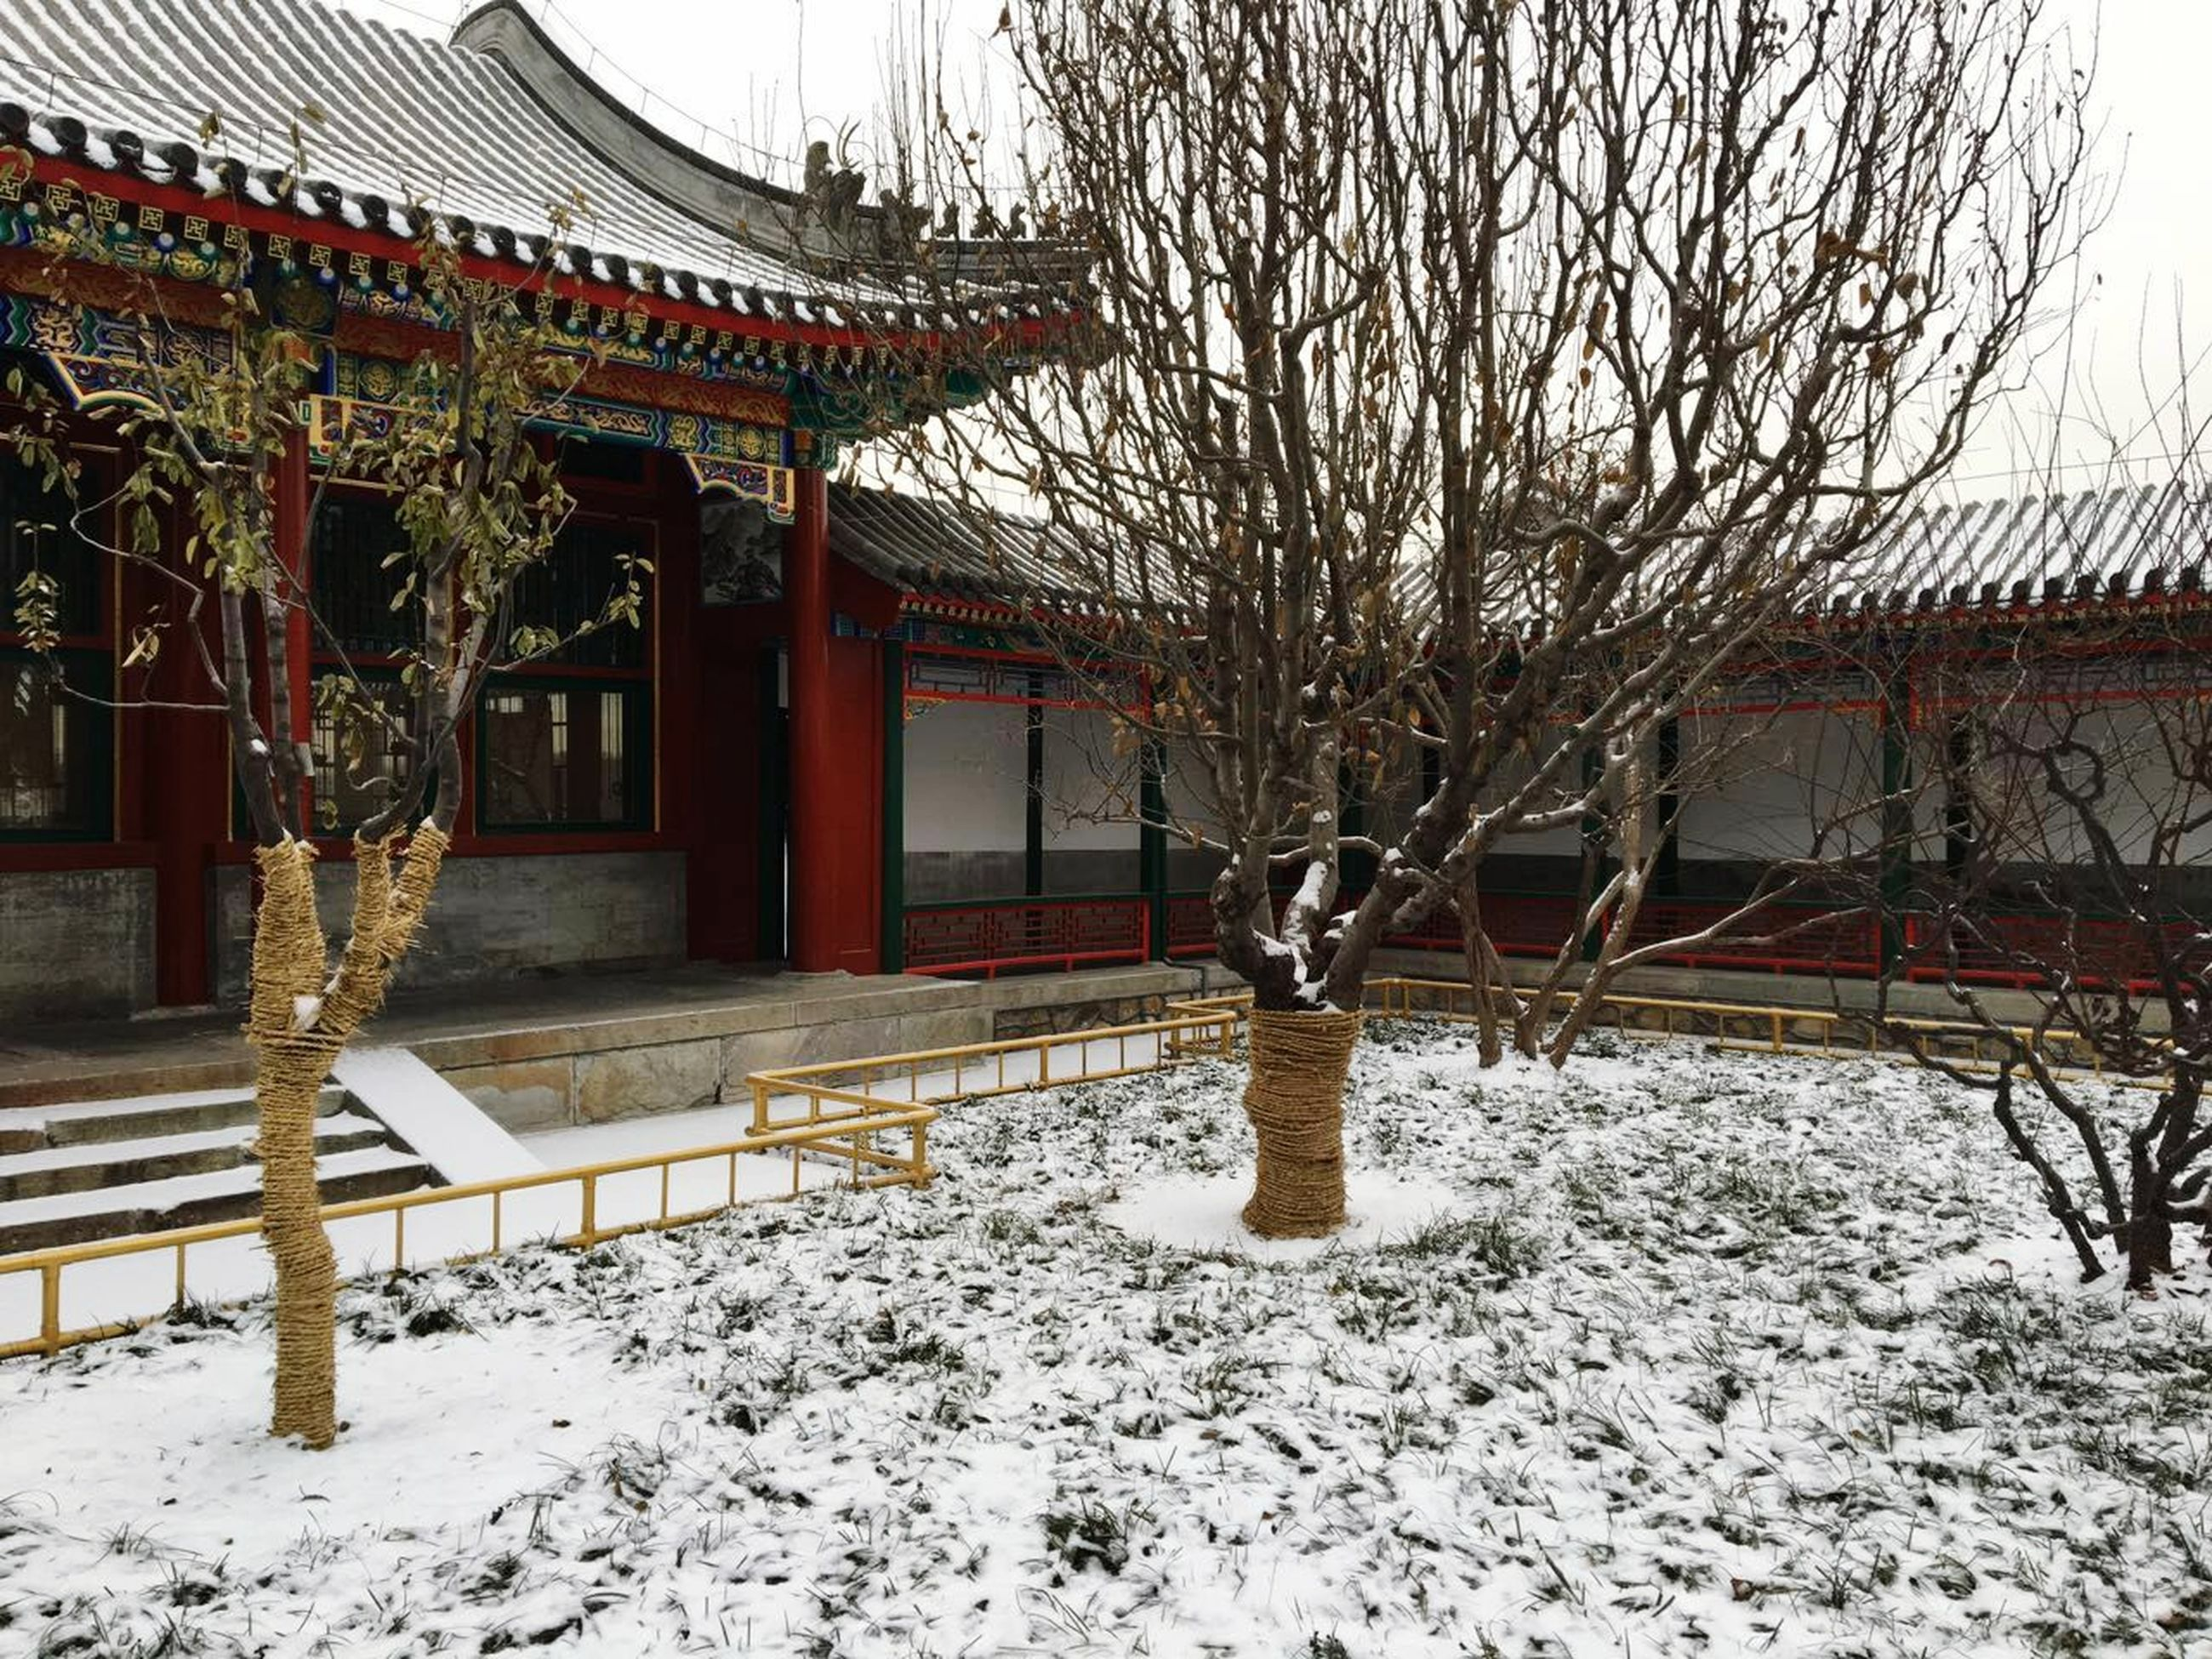 built structure, architecture, building exterior, snow, winter, cold temperature, house, bare tree, tree, season, residential structure, covering, day, fence, outdoors, no people, wood - material, nature, branch, residential building